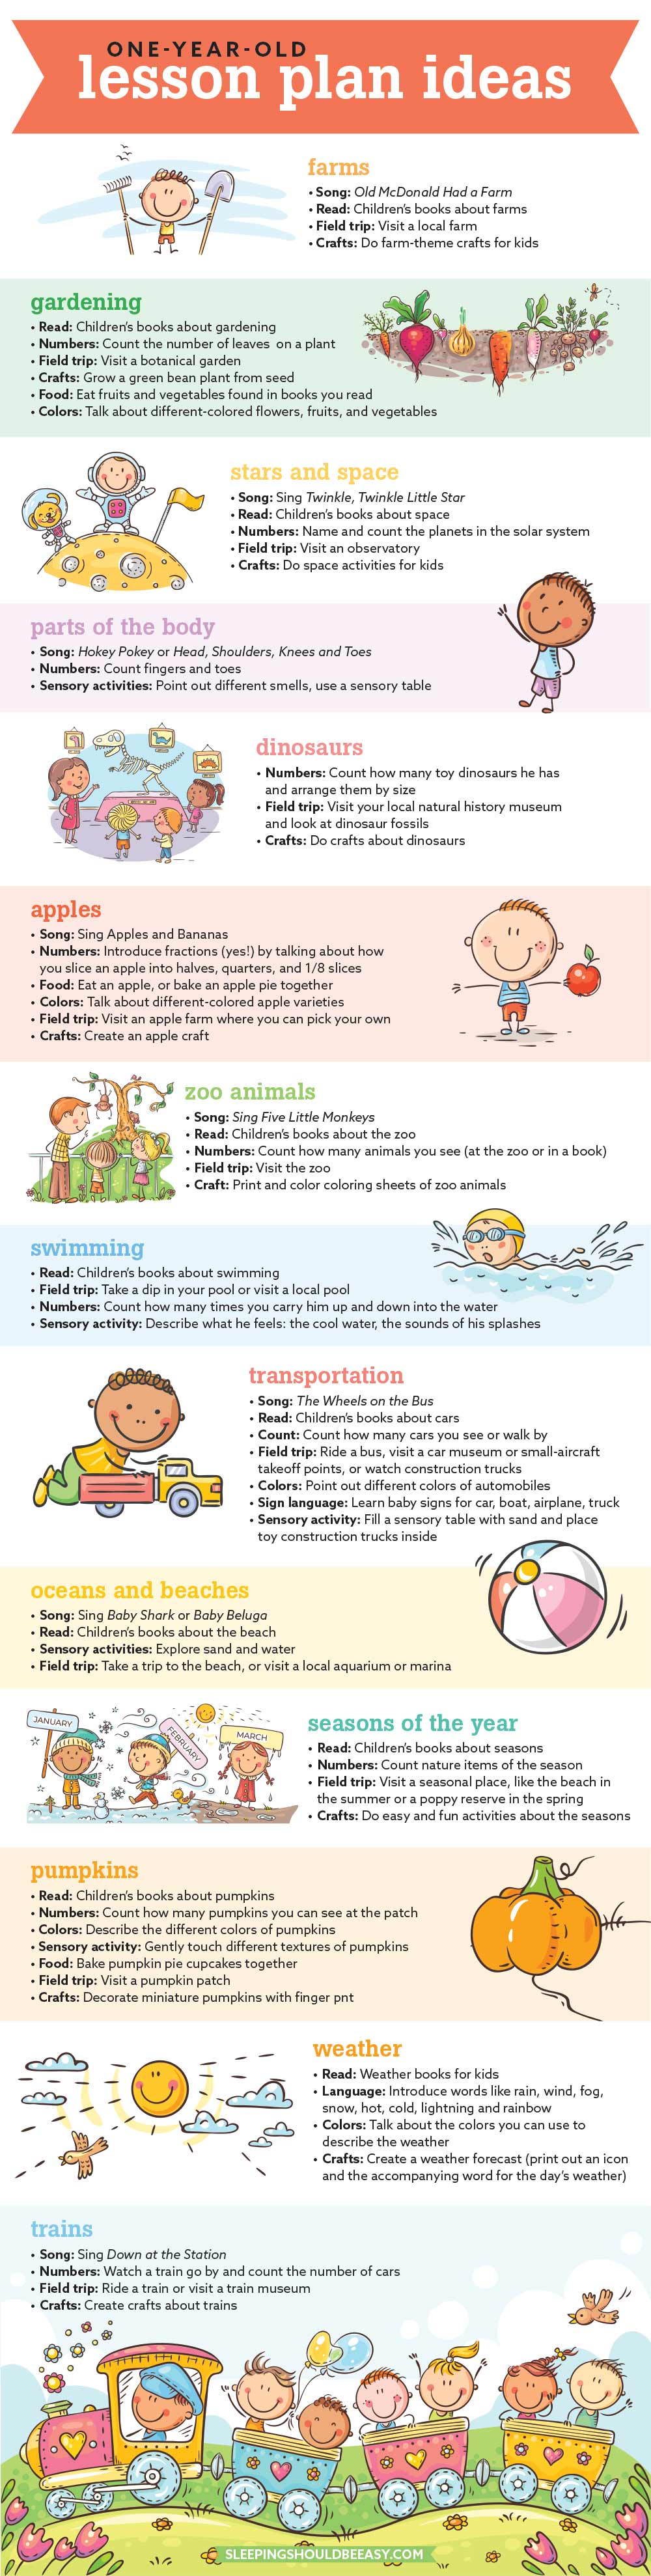 1 Year Old Lesson Plan Ideas infographic